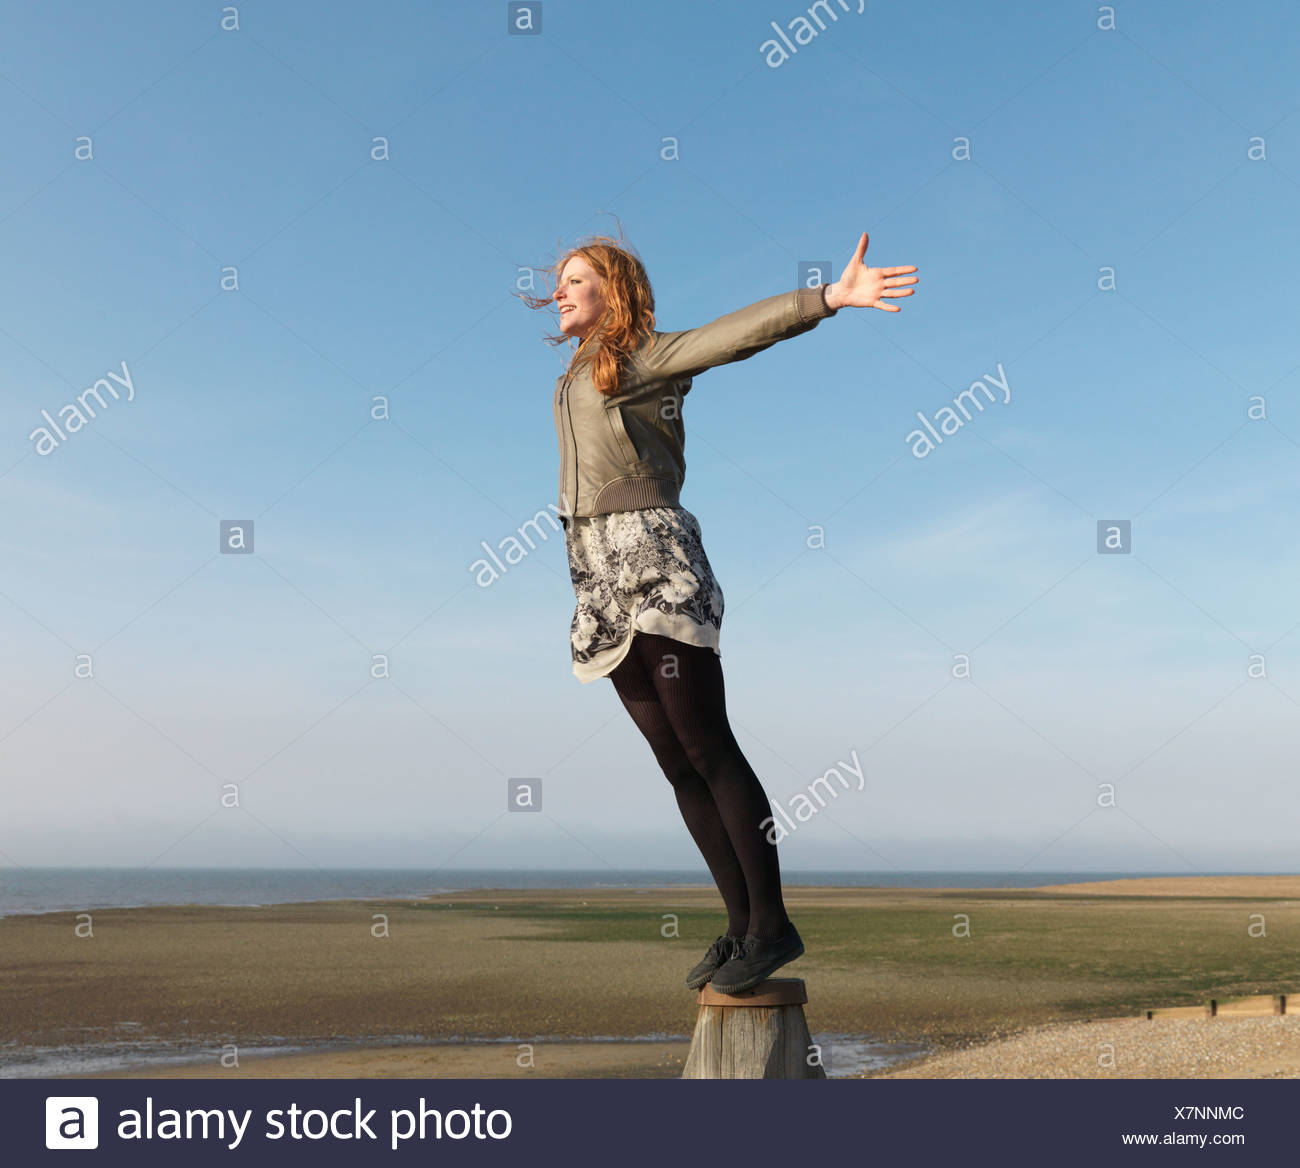 Woman standing on wooden post - Stock Image